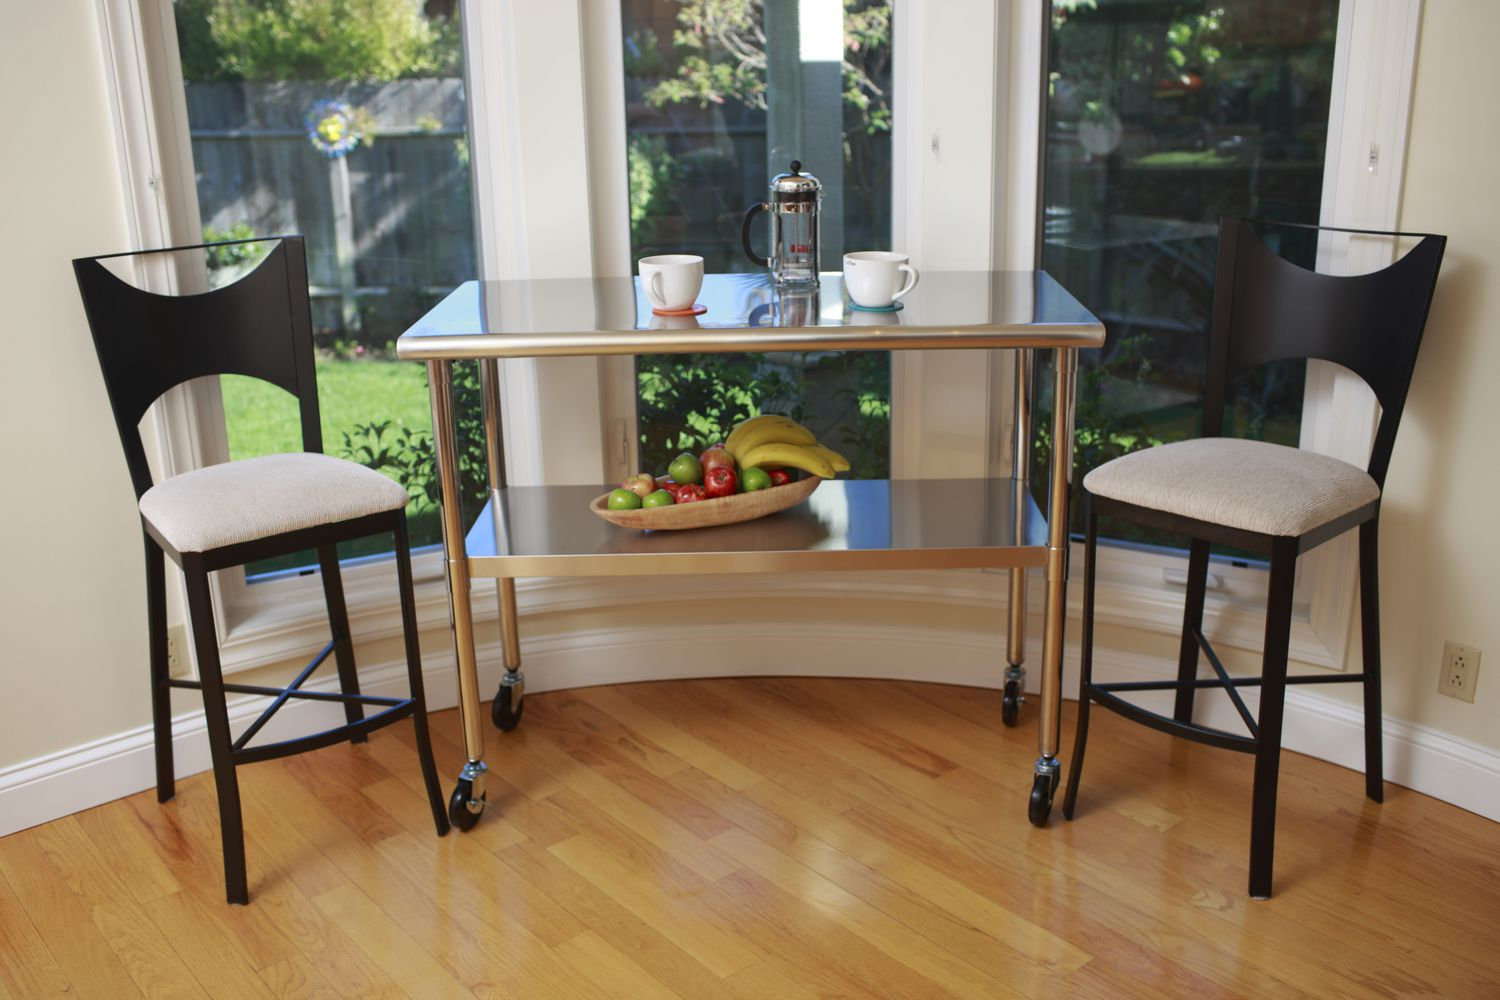 table on wheels. trinity ecostorage™ nsf stainless steel prep table with wheels | walmart canada on